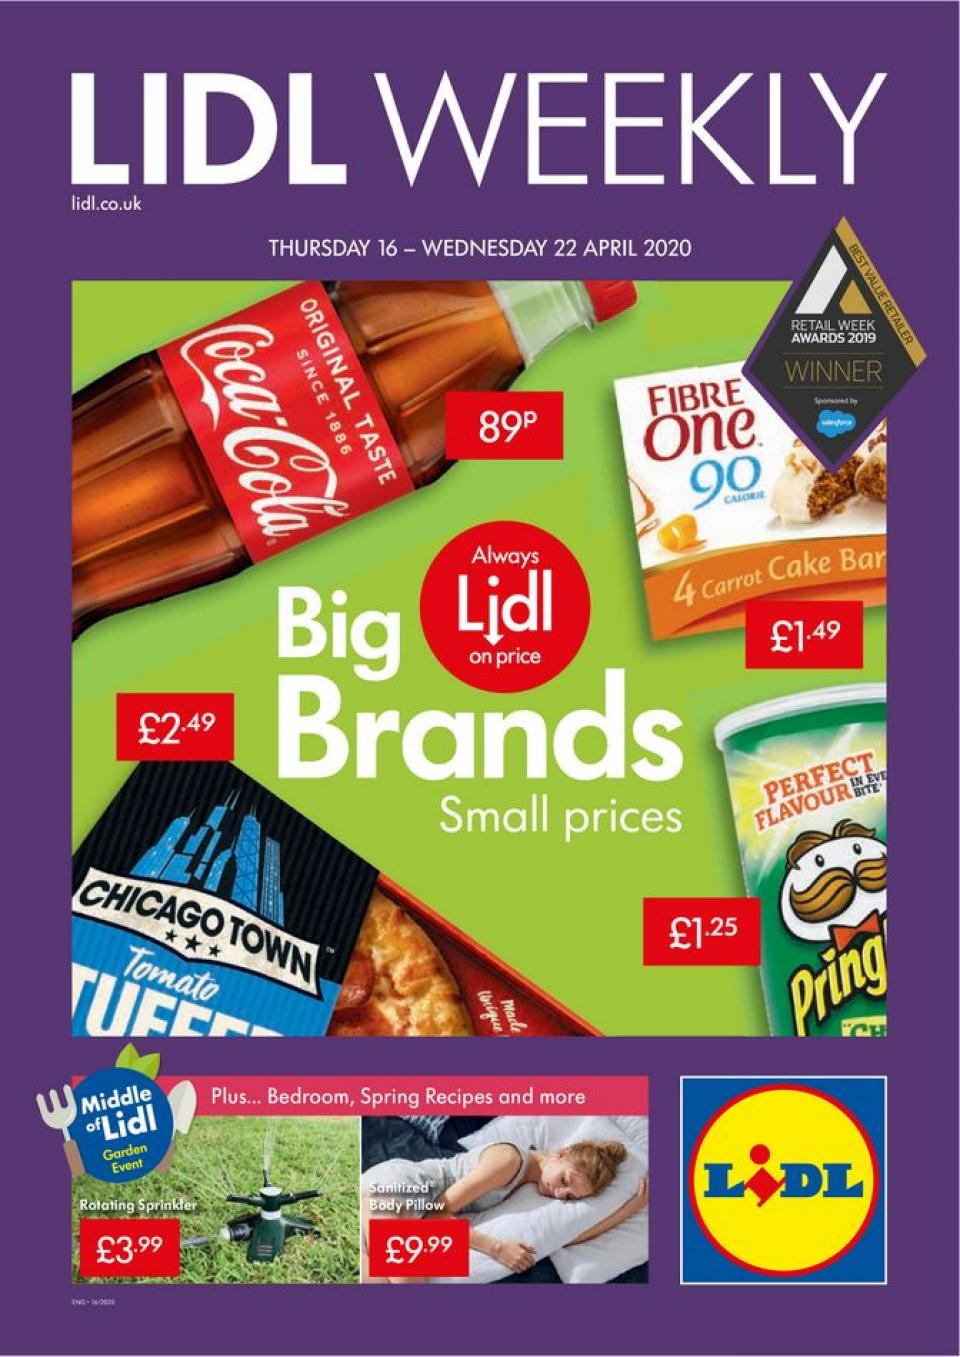 lidl offers weekly sale 16 april 2020